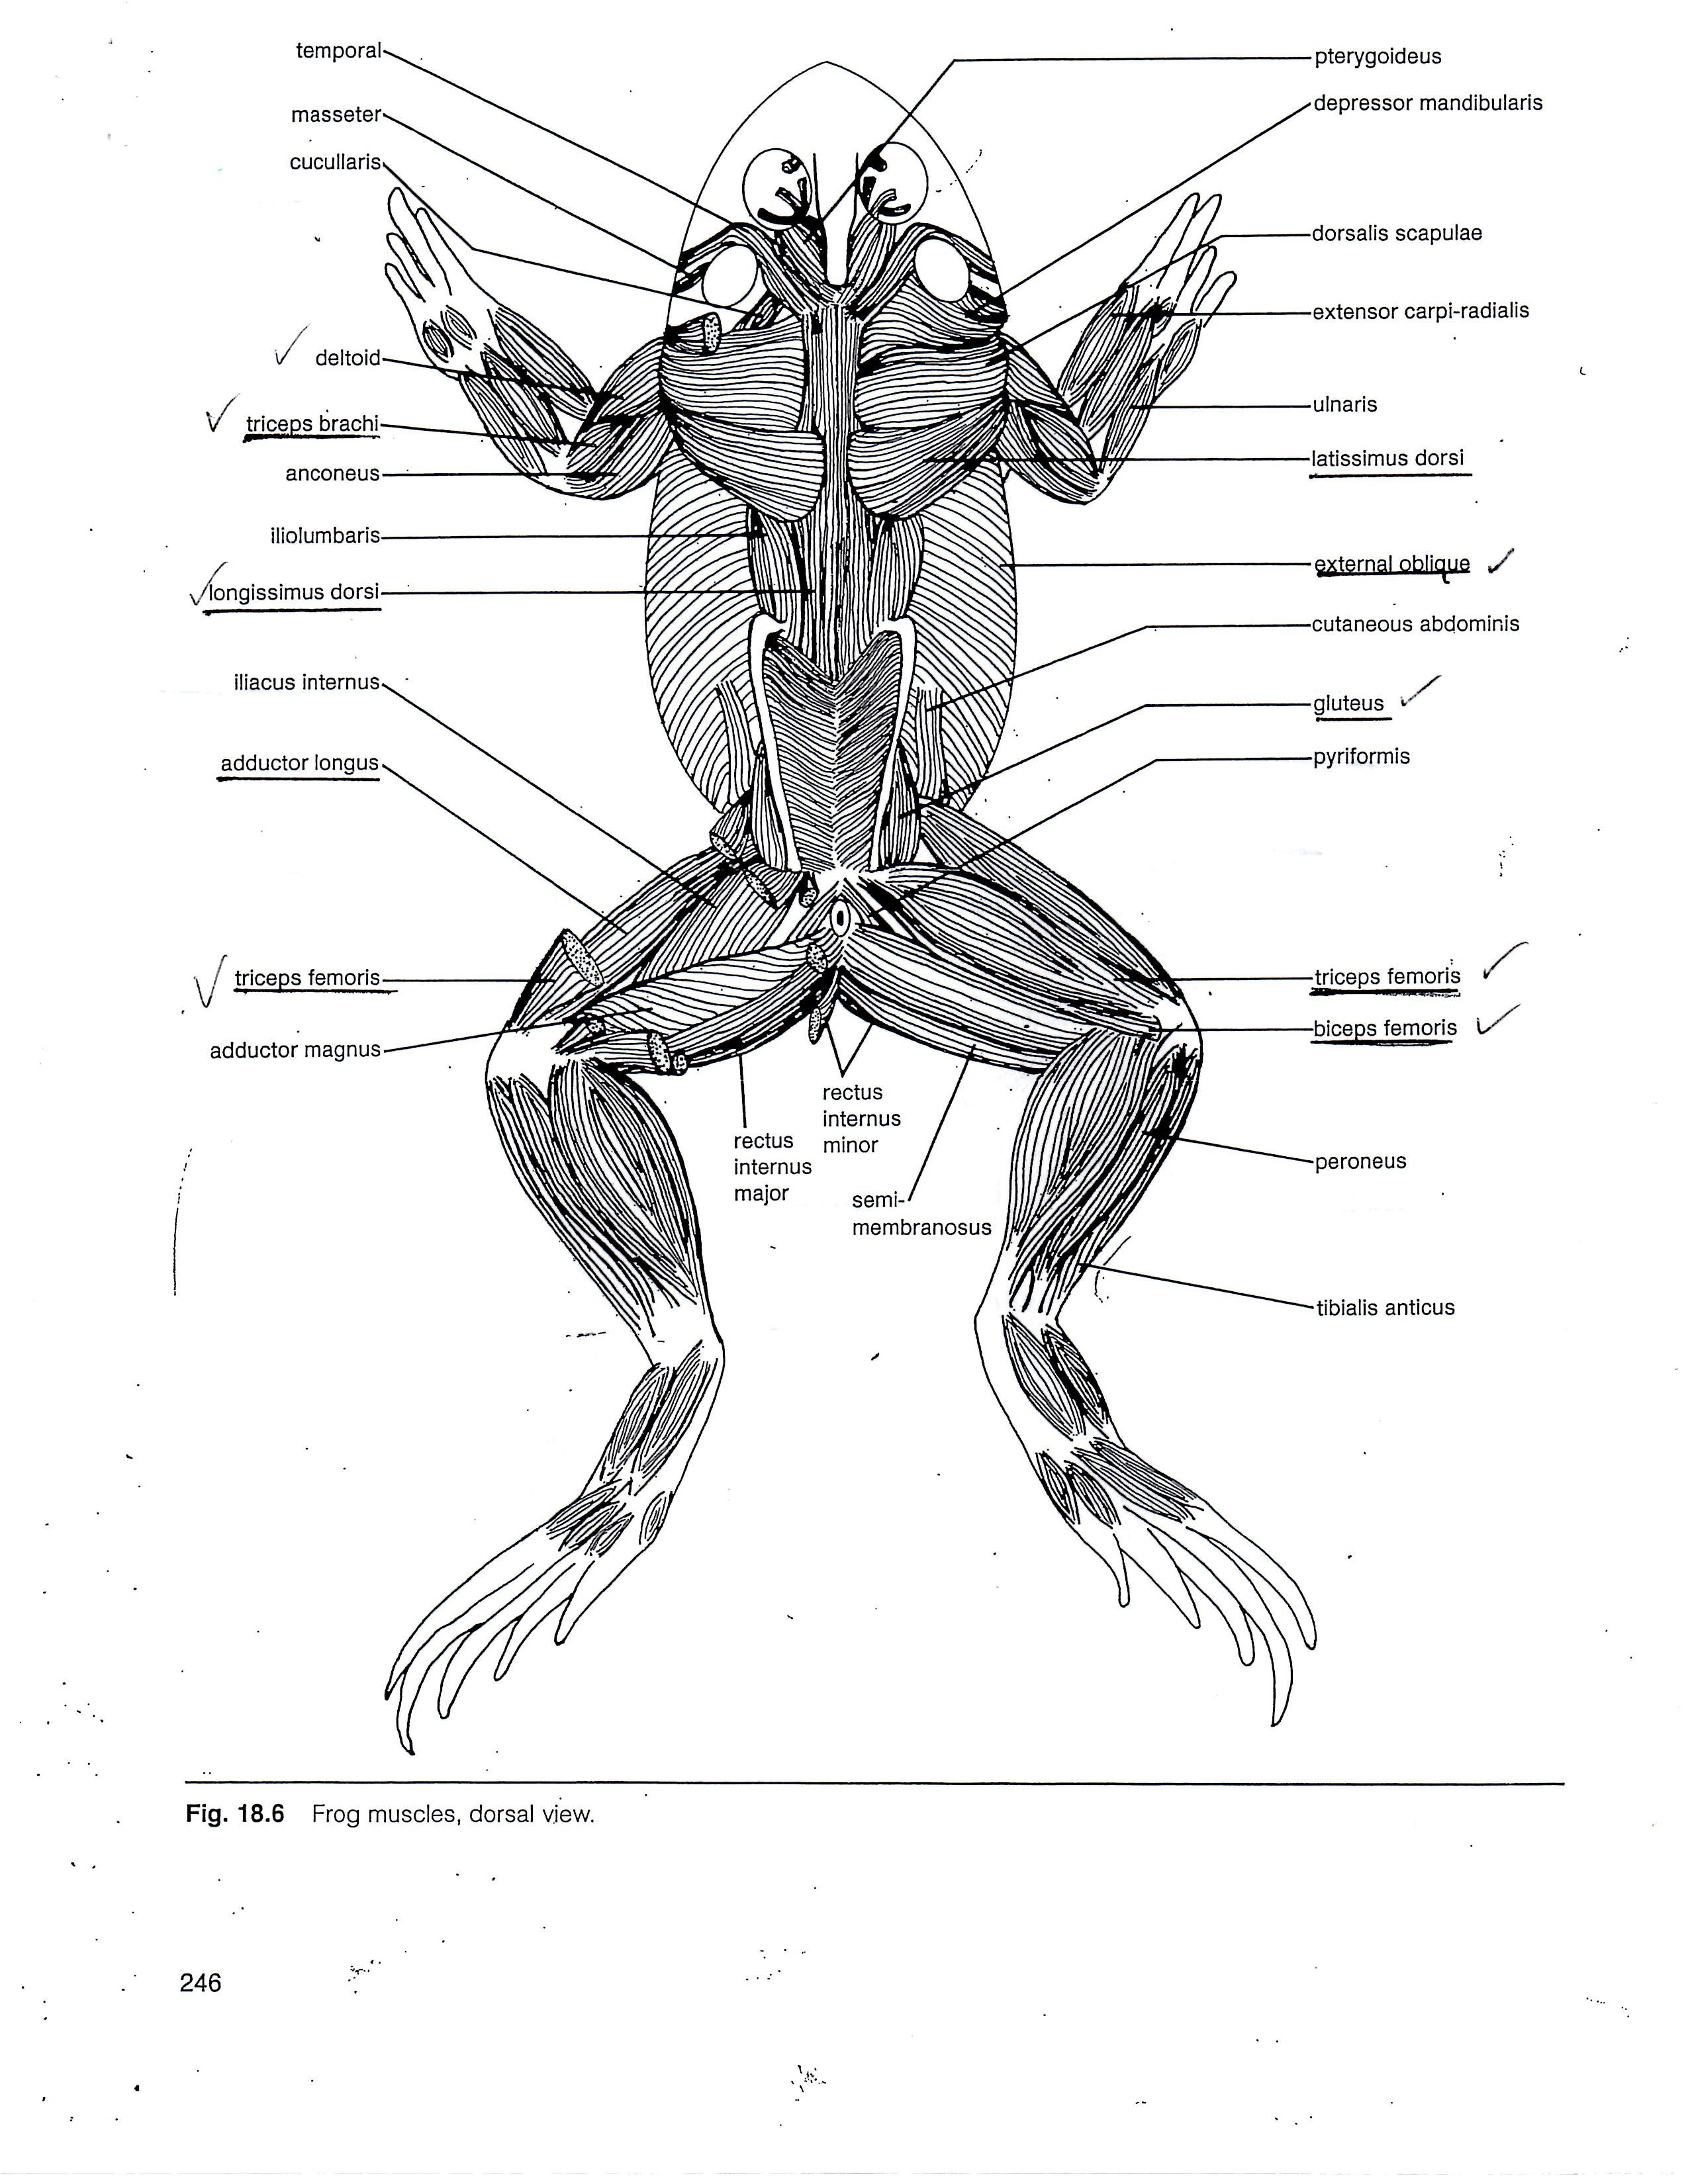 Frog Dissection Diagram Dorsal View Wiring Strategy Design Harness Tview Repair Wire T1048dvfd Muscle Anatomy Of Muscles Rh In Pinterest Com